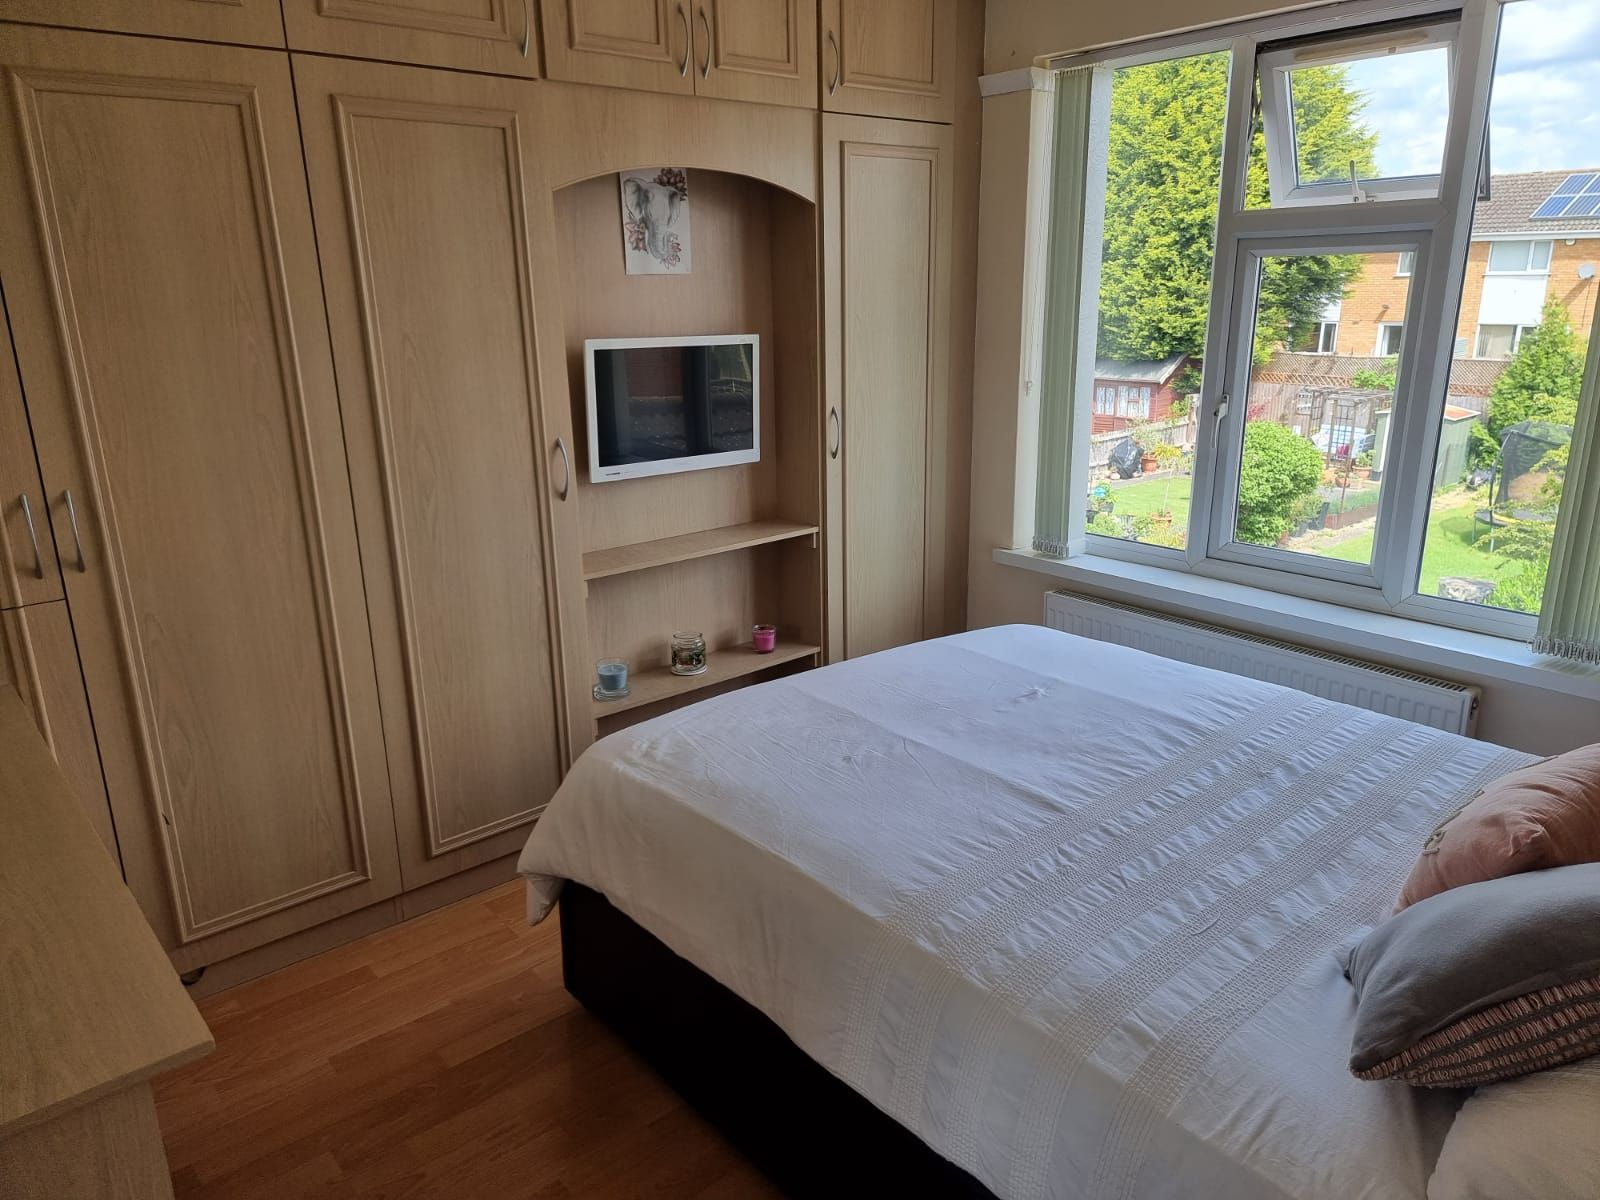 3 bedroom semi-detached house SSTC in Leicester - Photograph 7.